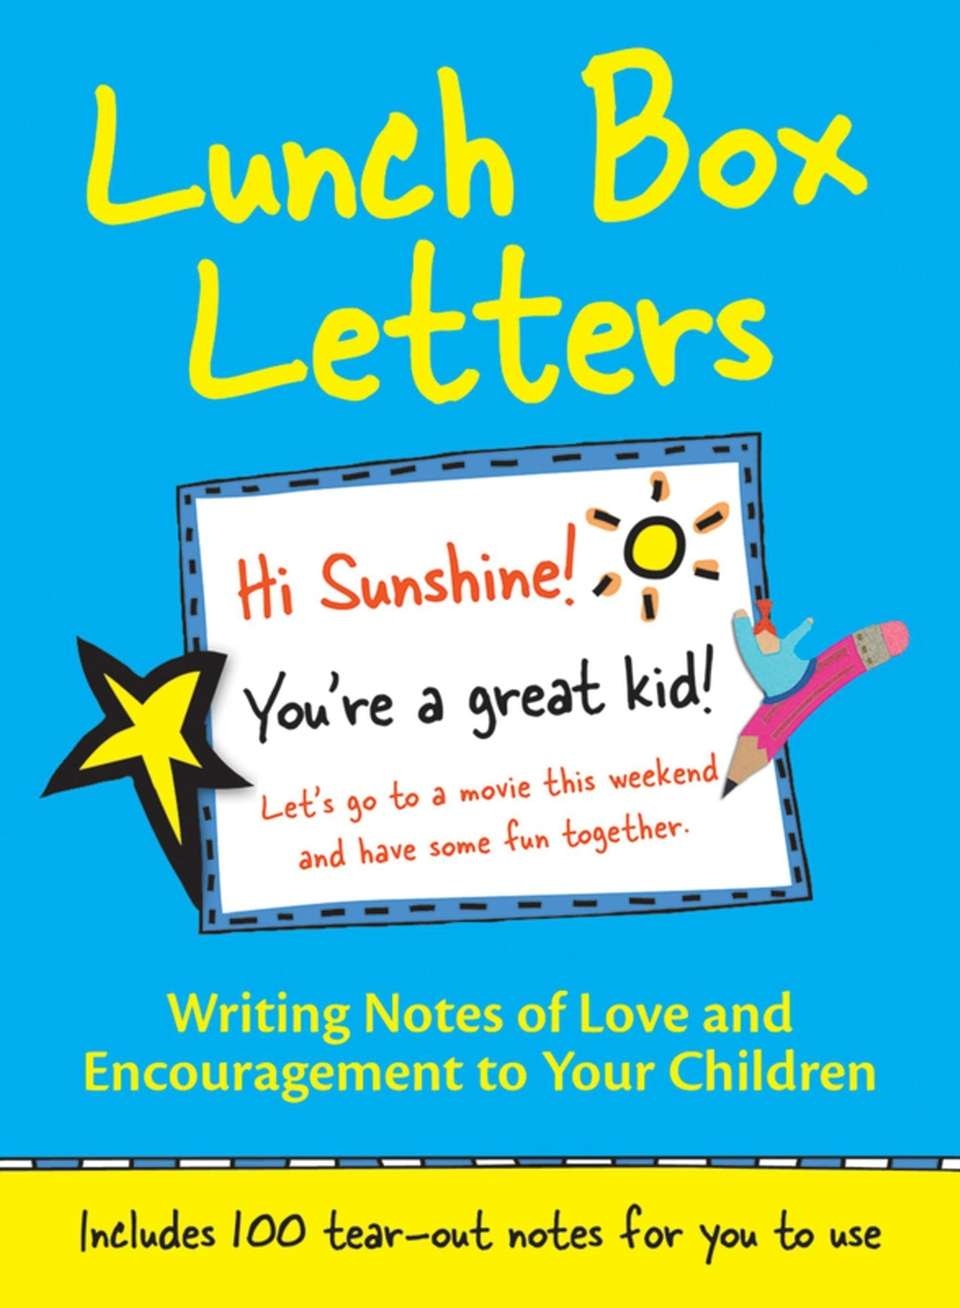 Need inspiration for writing your kids lunchbox letters?